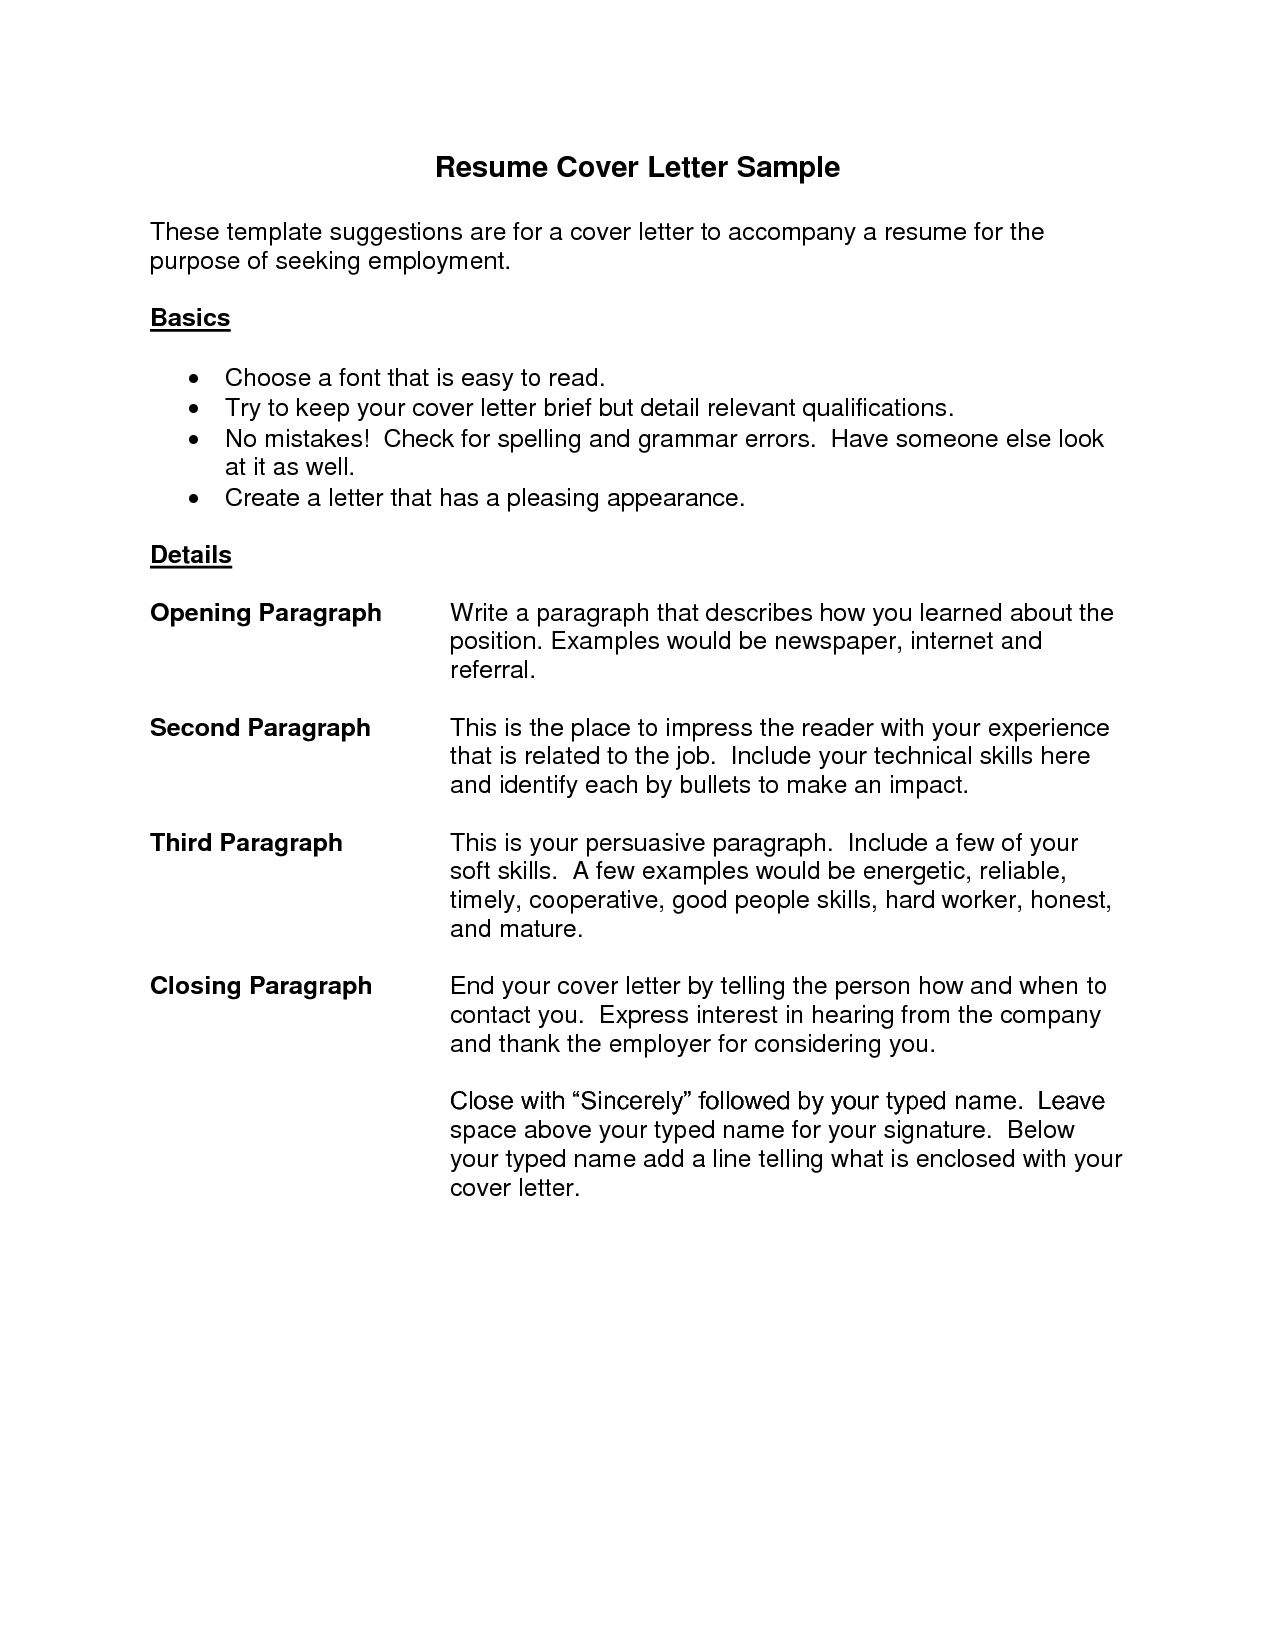 Resume Writing Template Free Cover Letter Resume Best Templatesimple Cover Letter Application